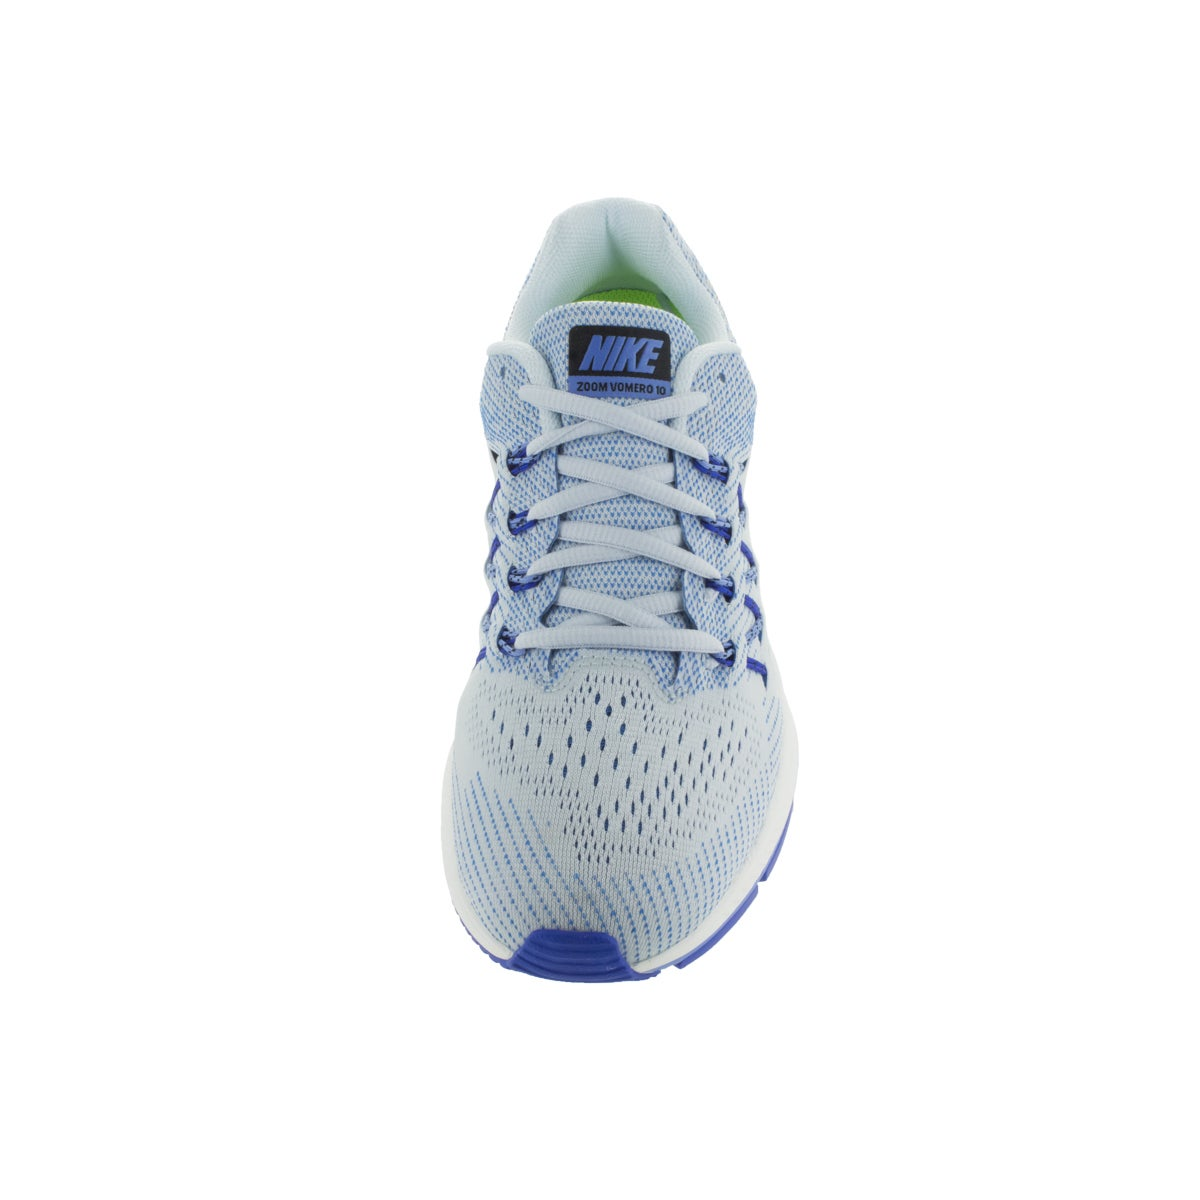 0aa578730c86 Shop Nike Women s Air Zoom Vomero 10 Blue Tint Black Chalk Blue Running  Shoe - Free Shipping Today - Overstock - 12328803